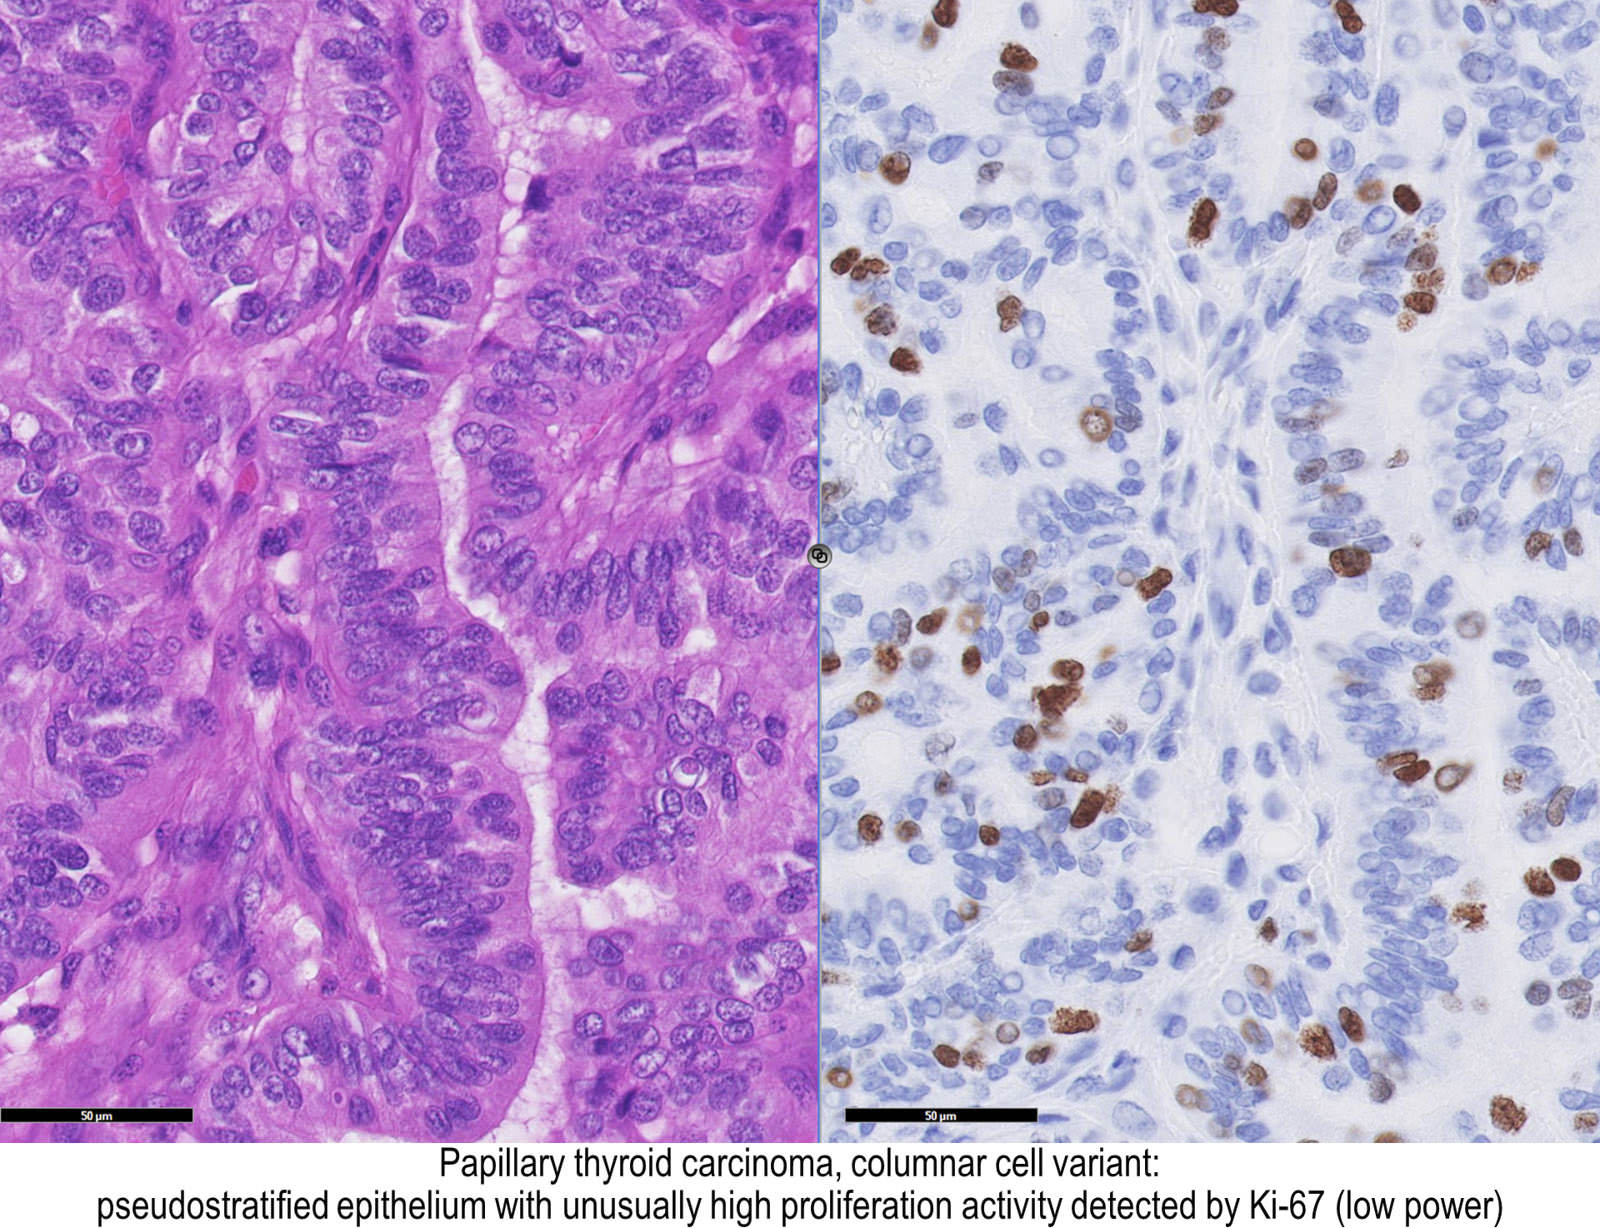 papillary thyroid carcinoma variants pathology outlines